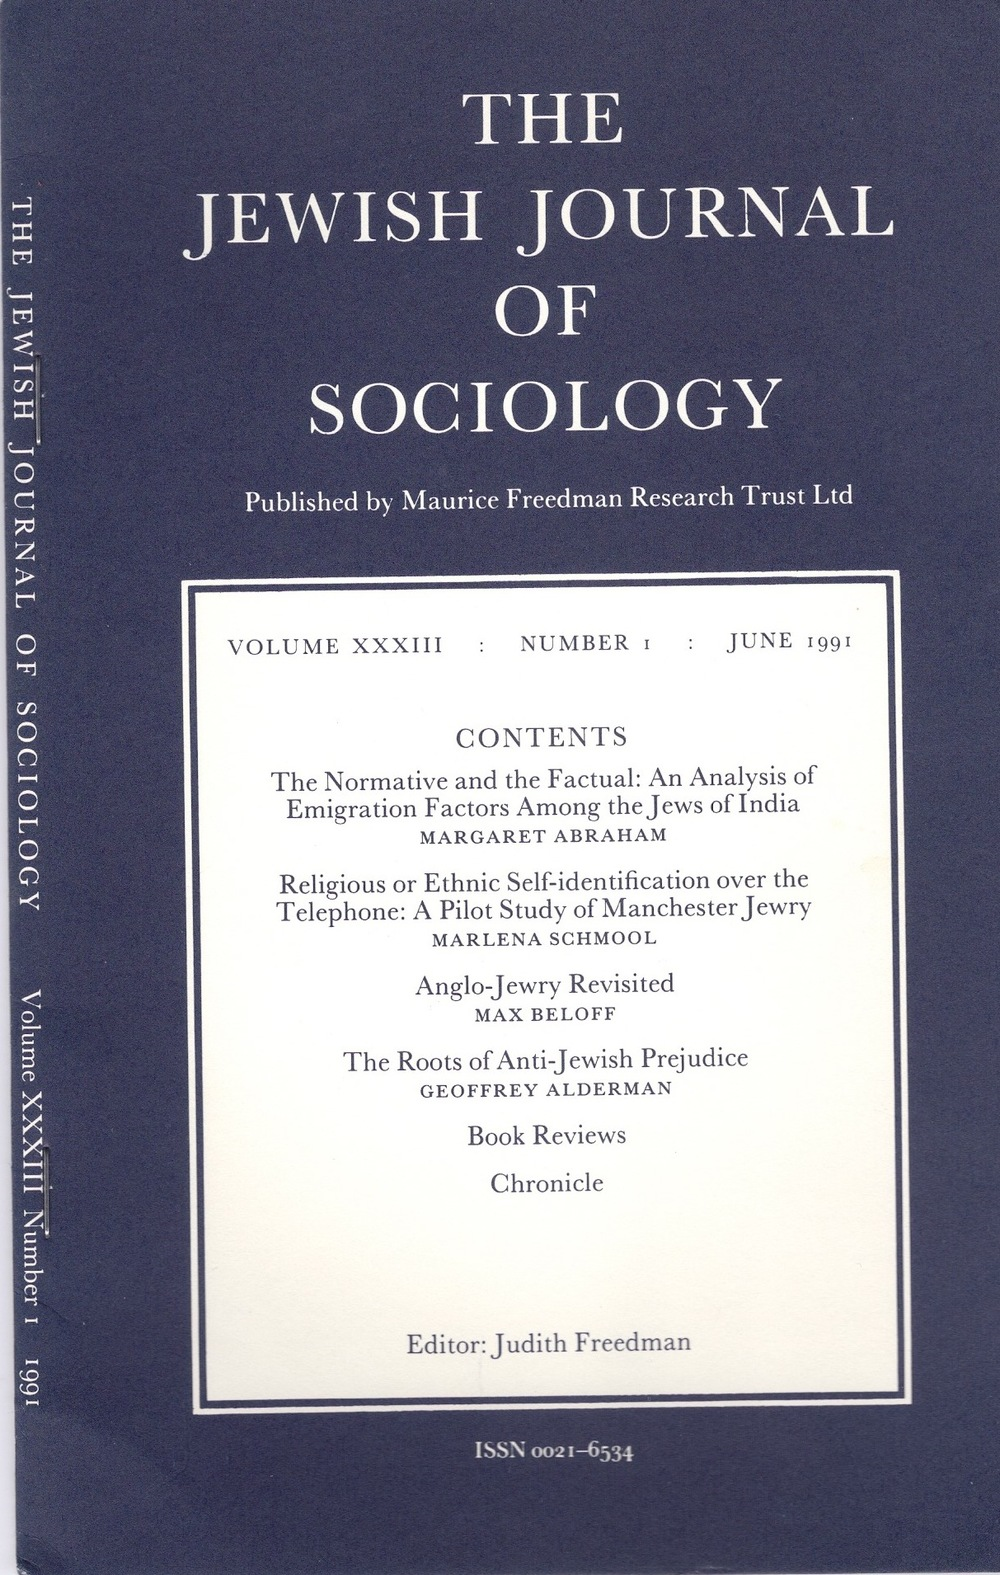 Jewish Journal of Sociology 1991.jpg